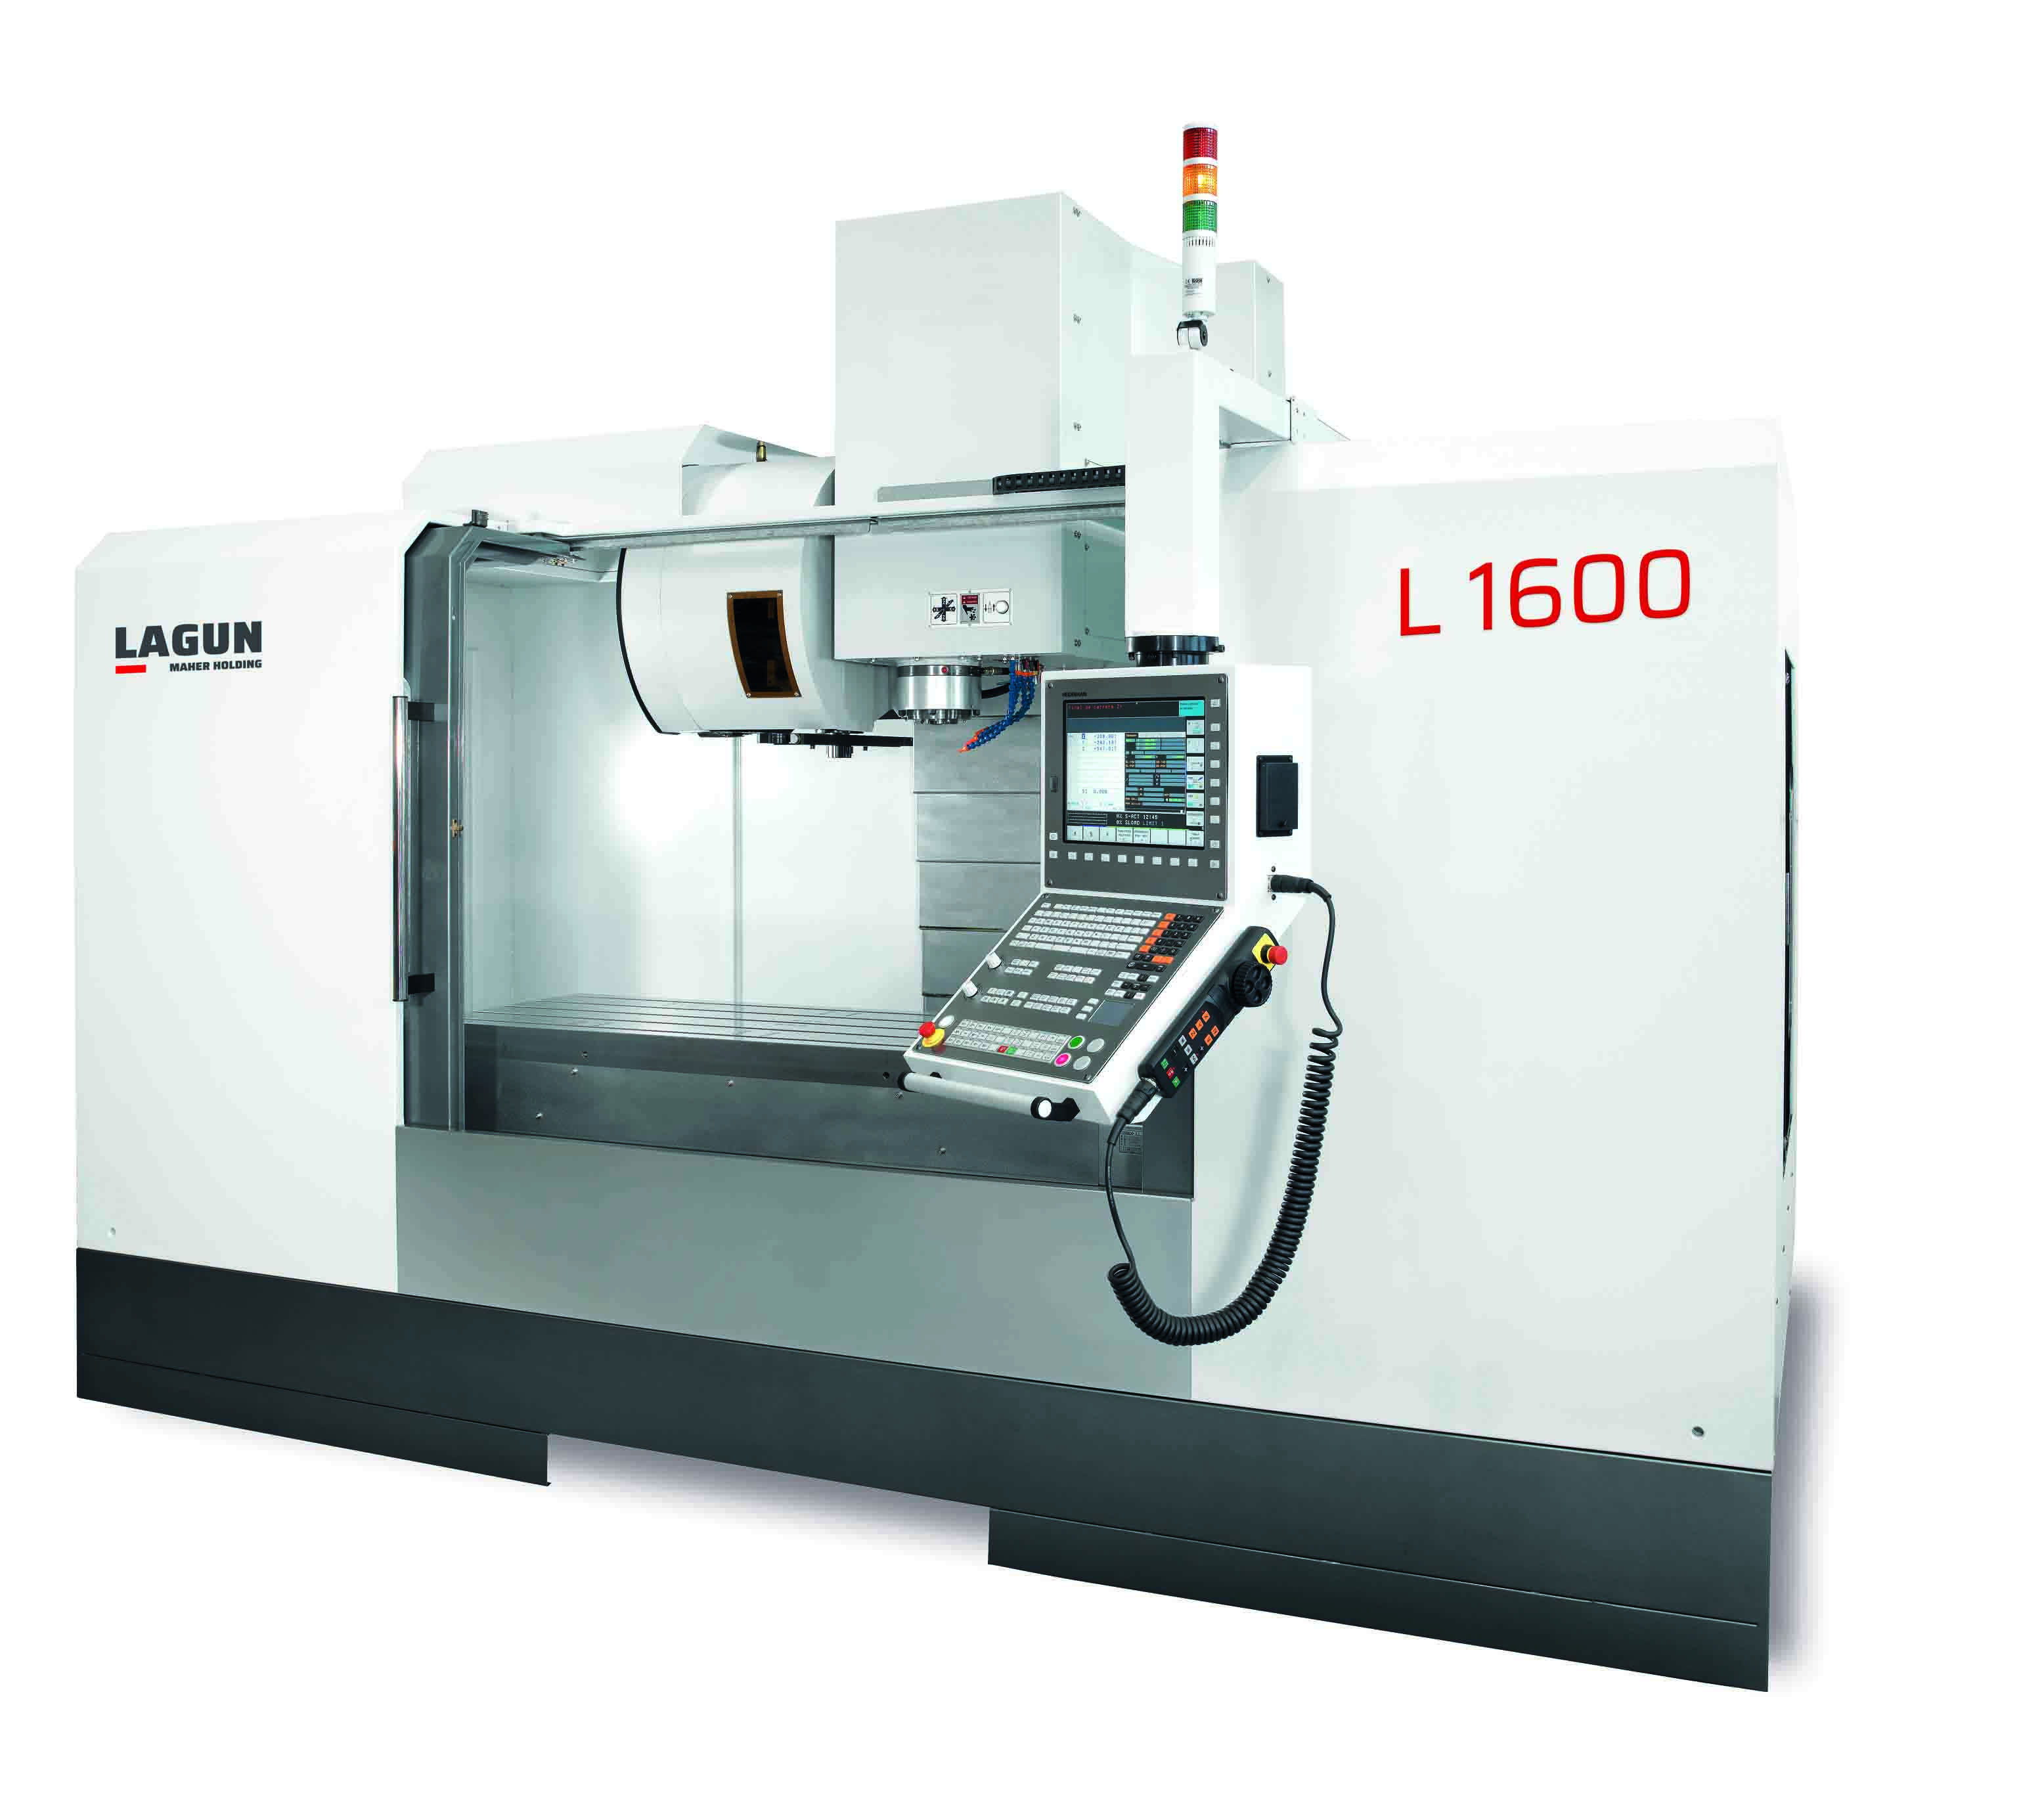 High speed vertical machining centres Vertical Machining Centre: L 1600 model